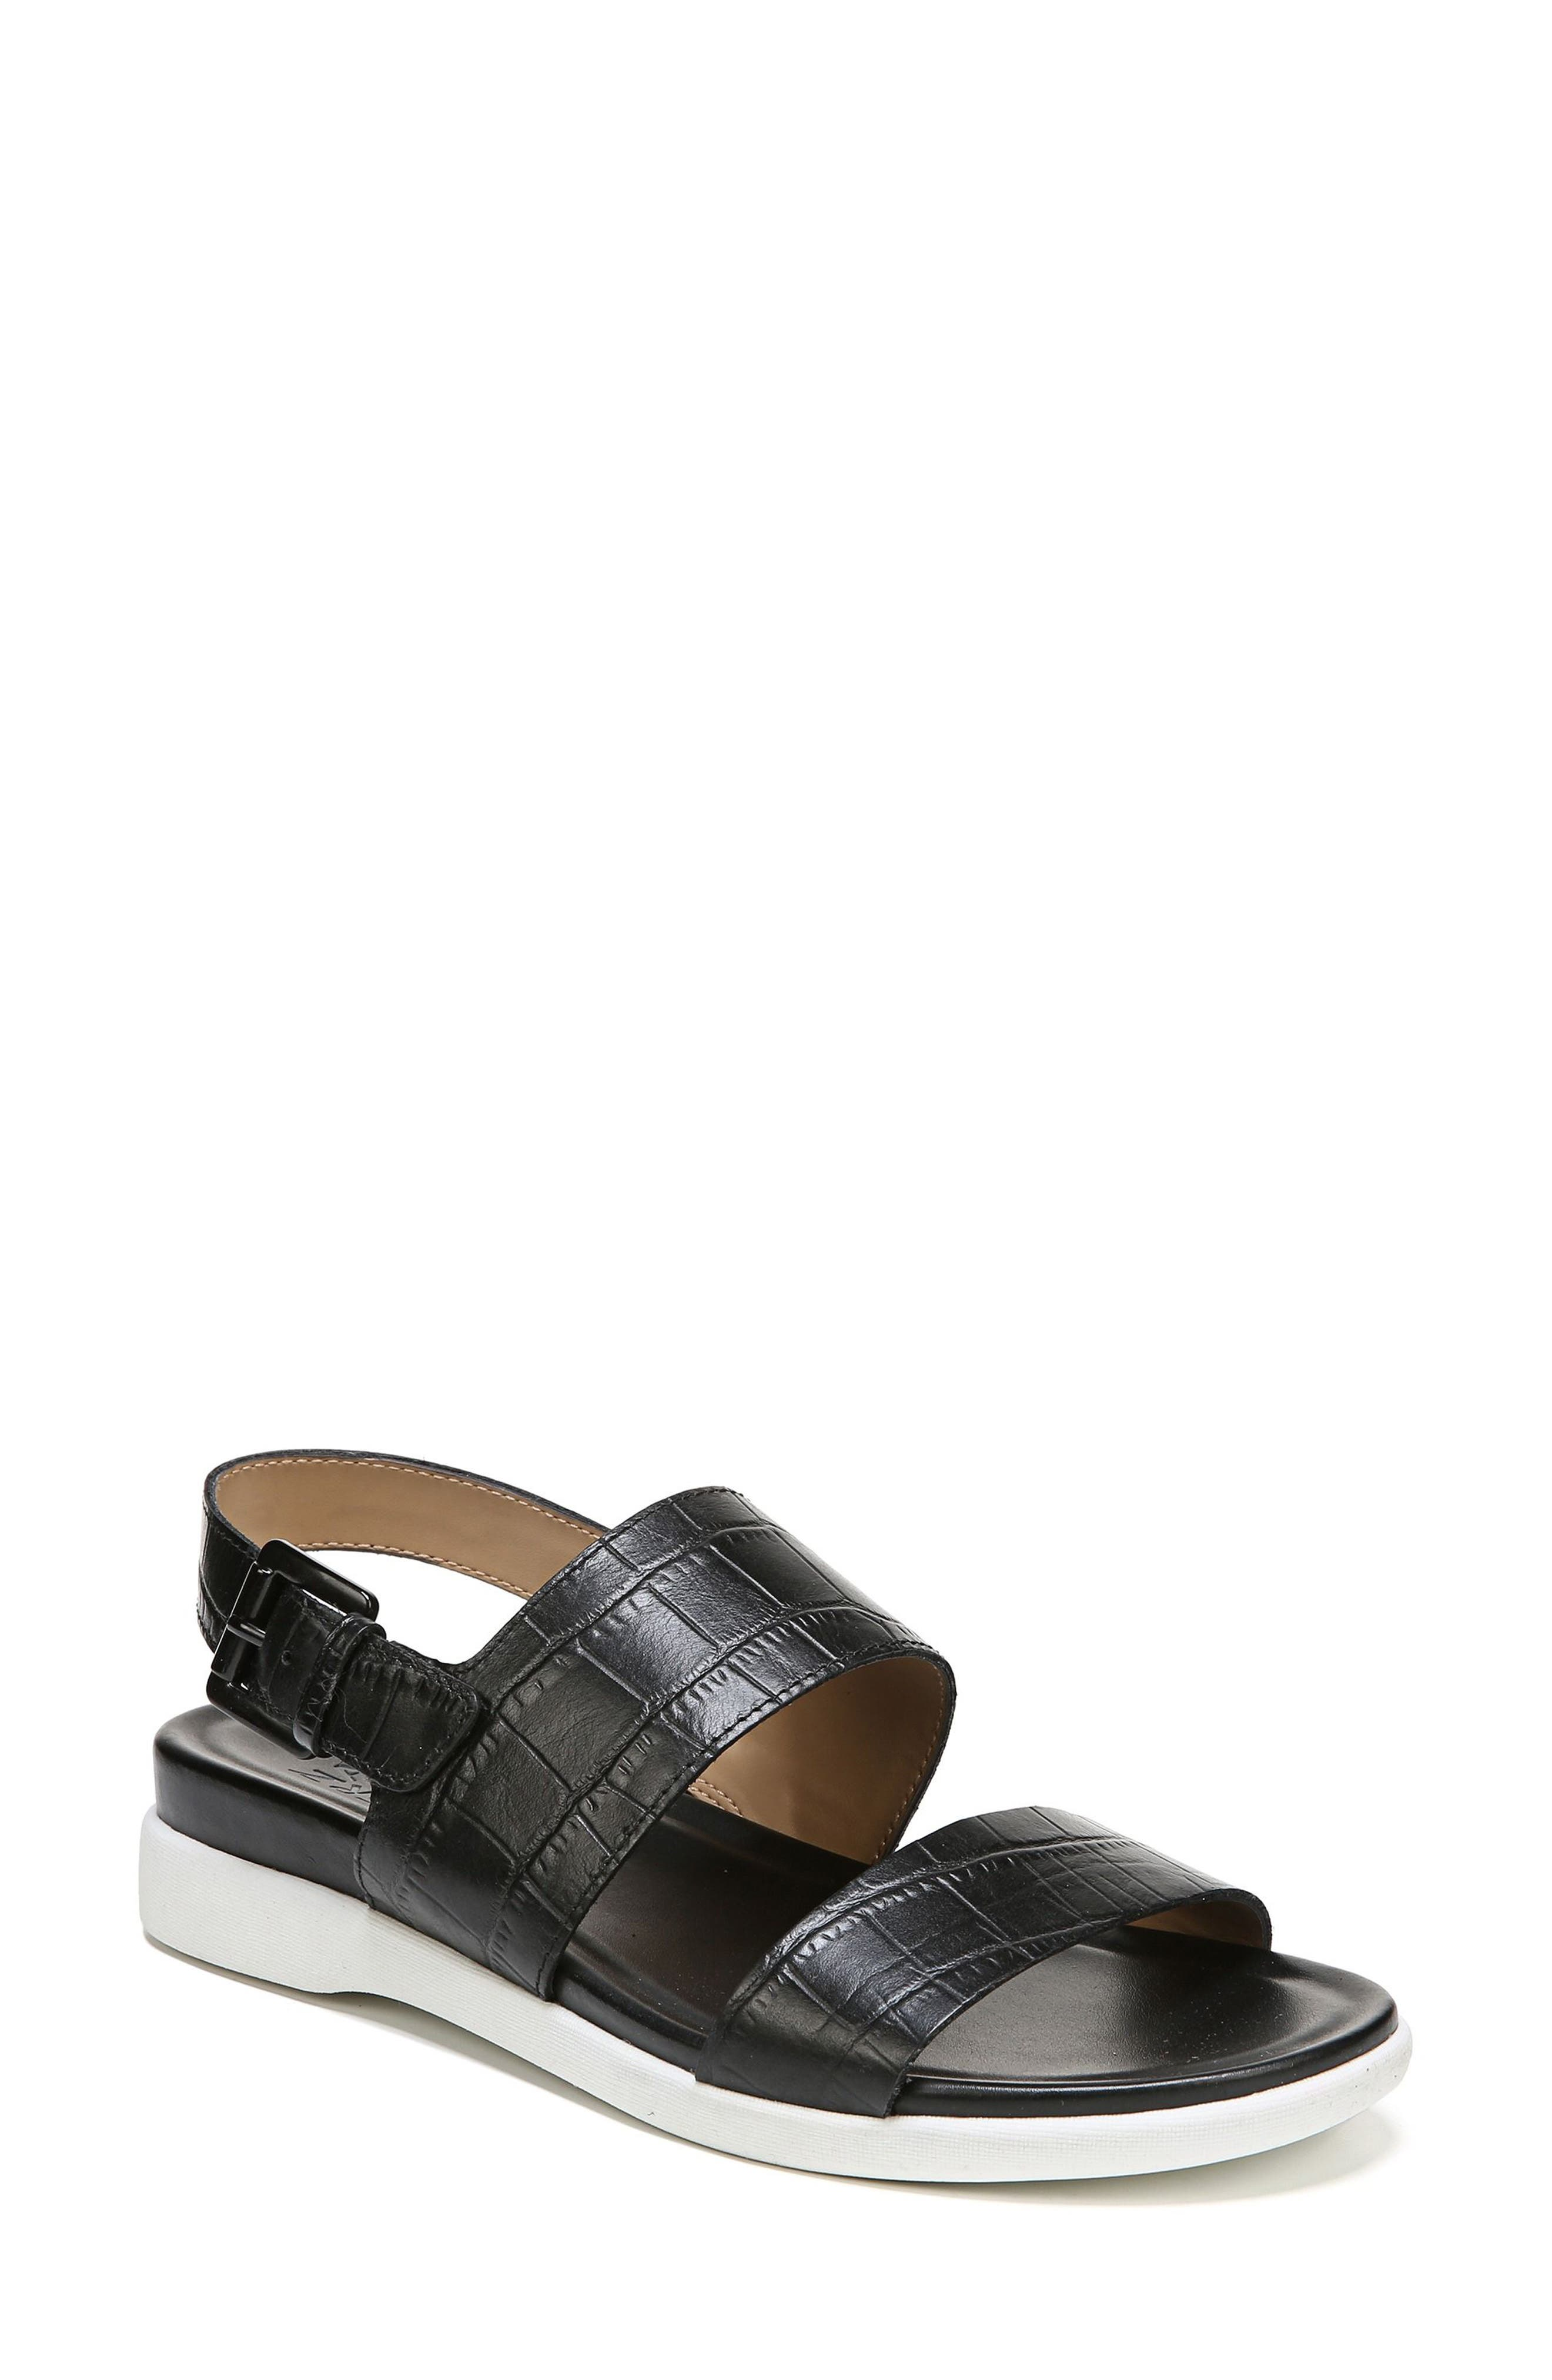 Emory Wedge Sandal,                             Main thumbnail 1, color,                             BLACK PRINTED LEATHER